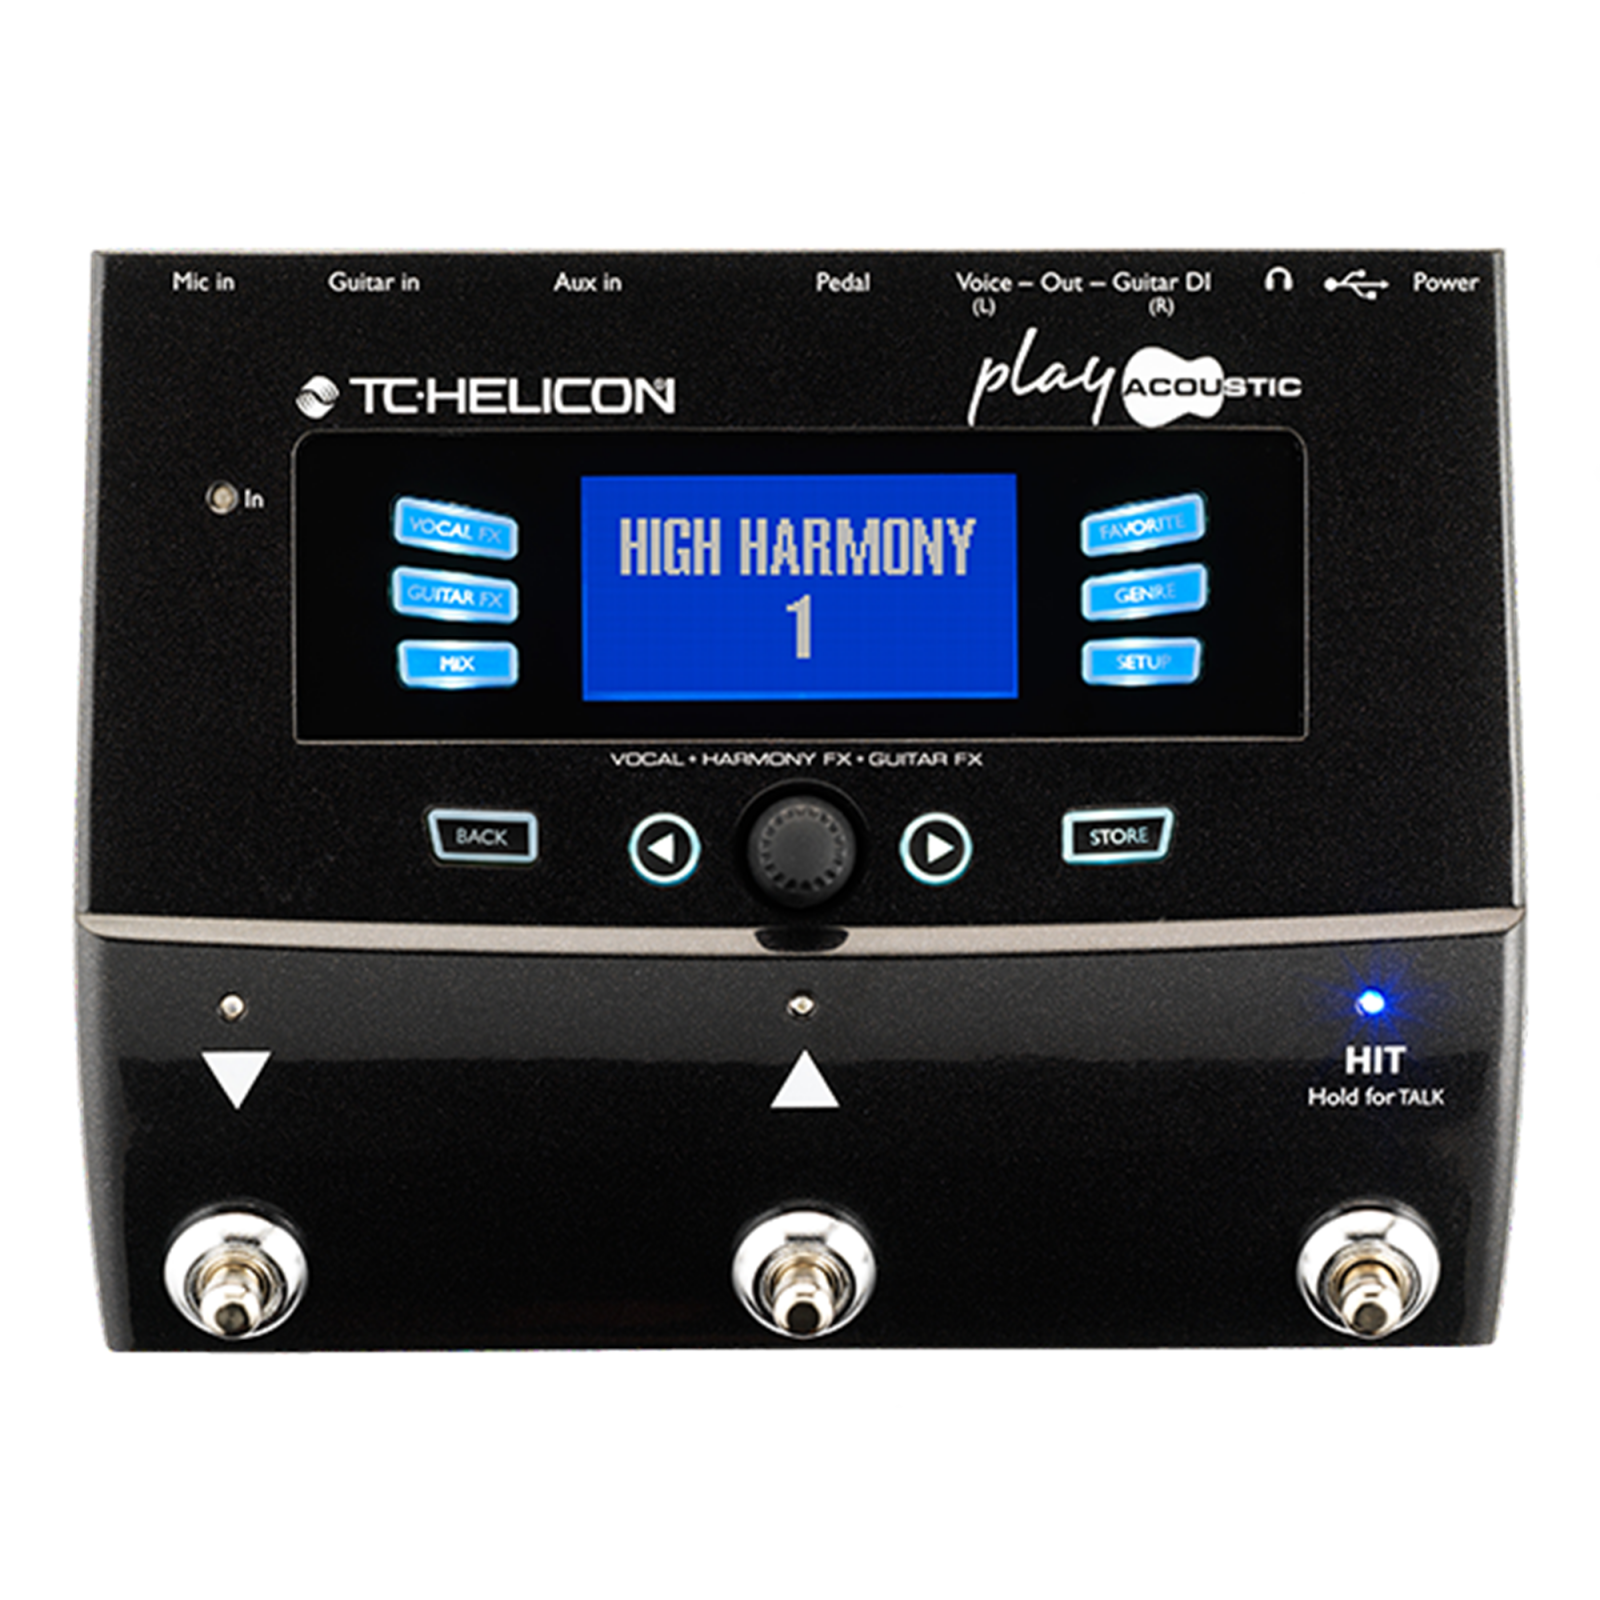 Tc Helicon Voicelive Play Acoustic Guitar Effects Pedal 5706622019820